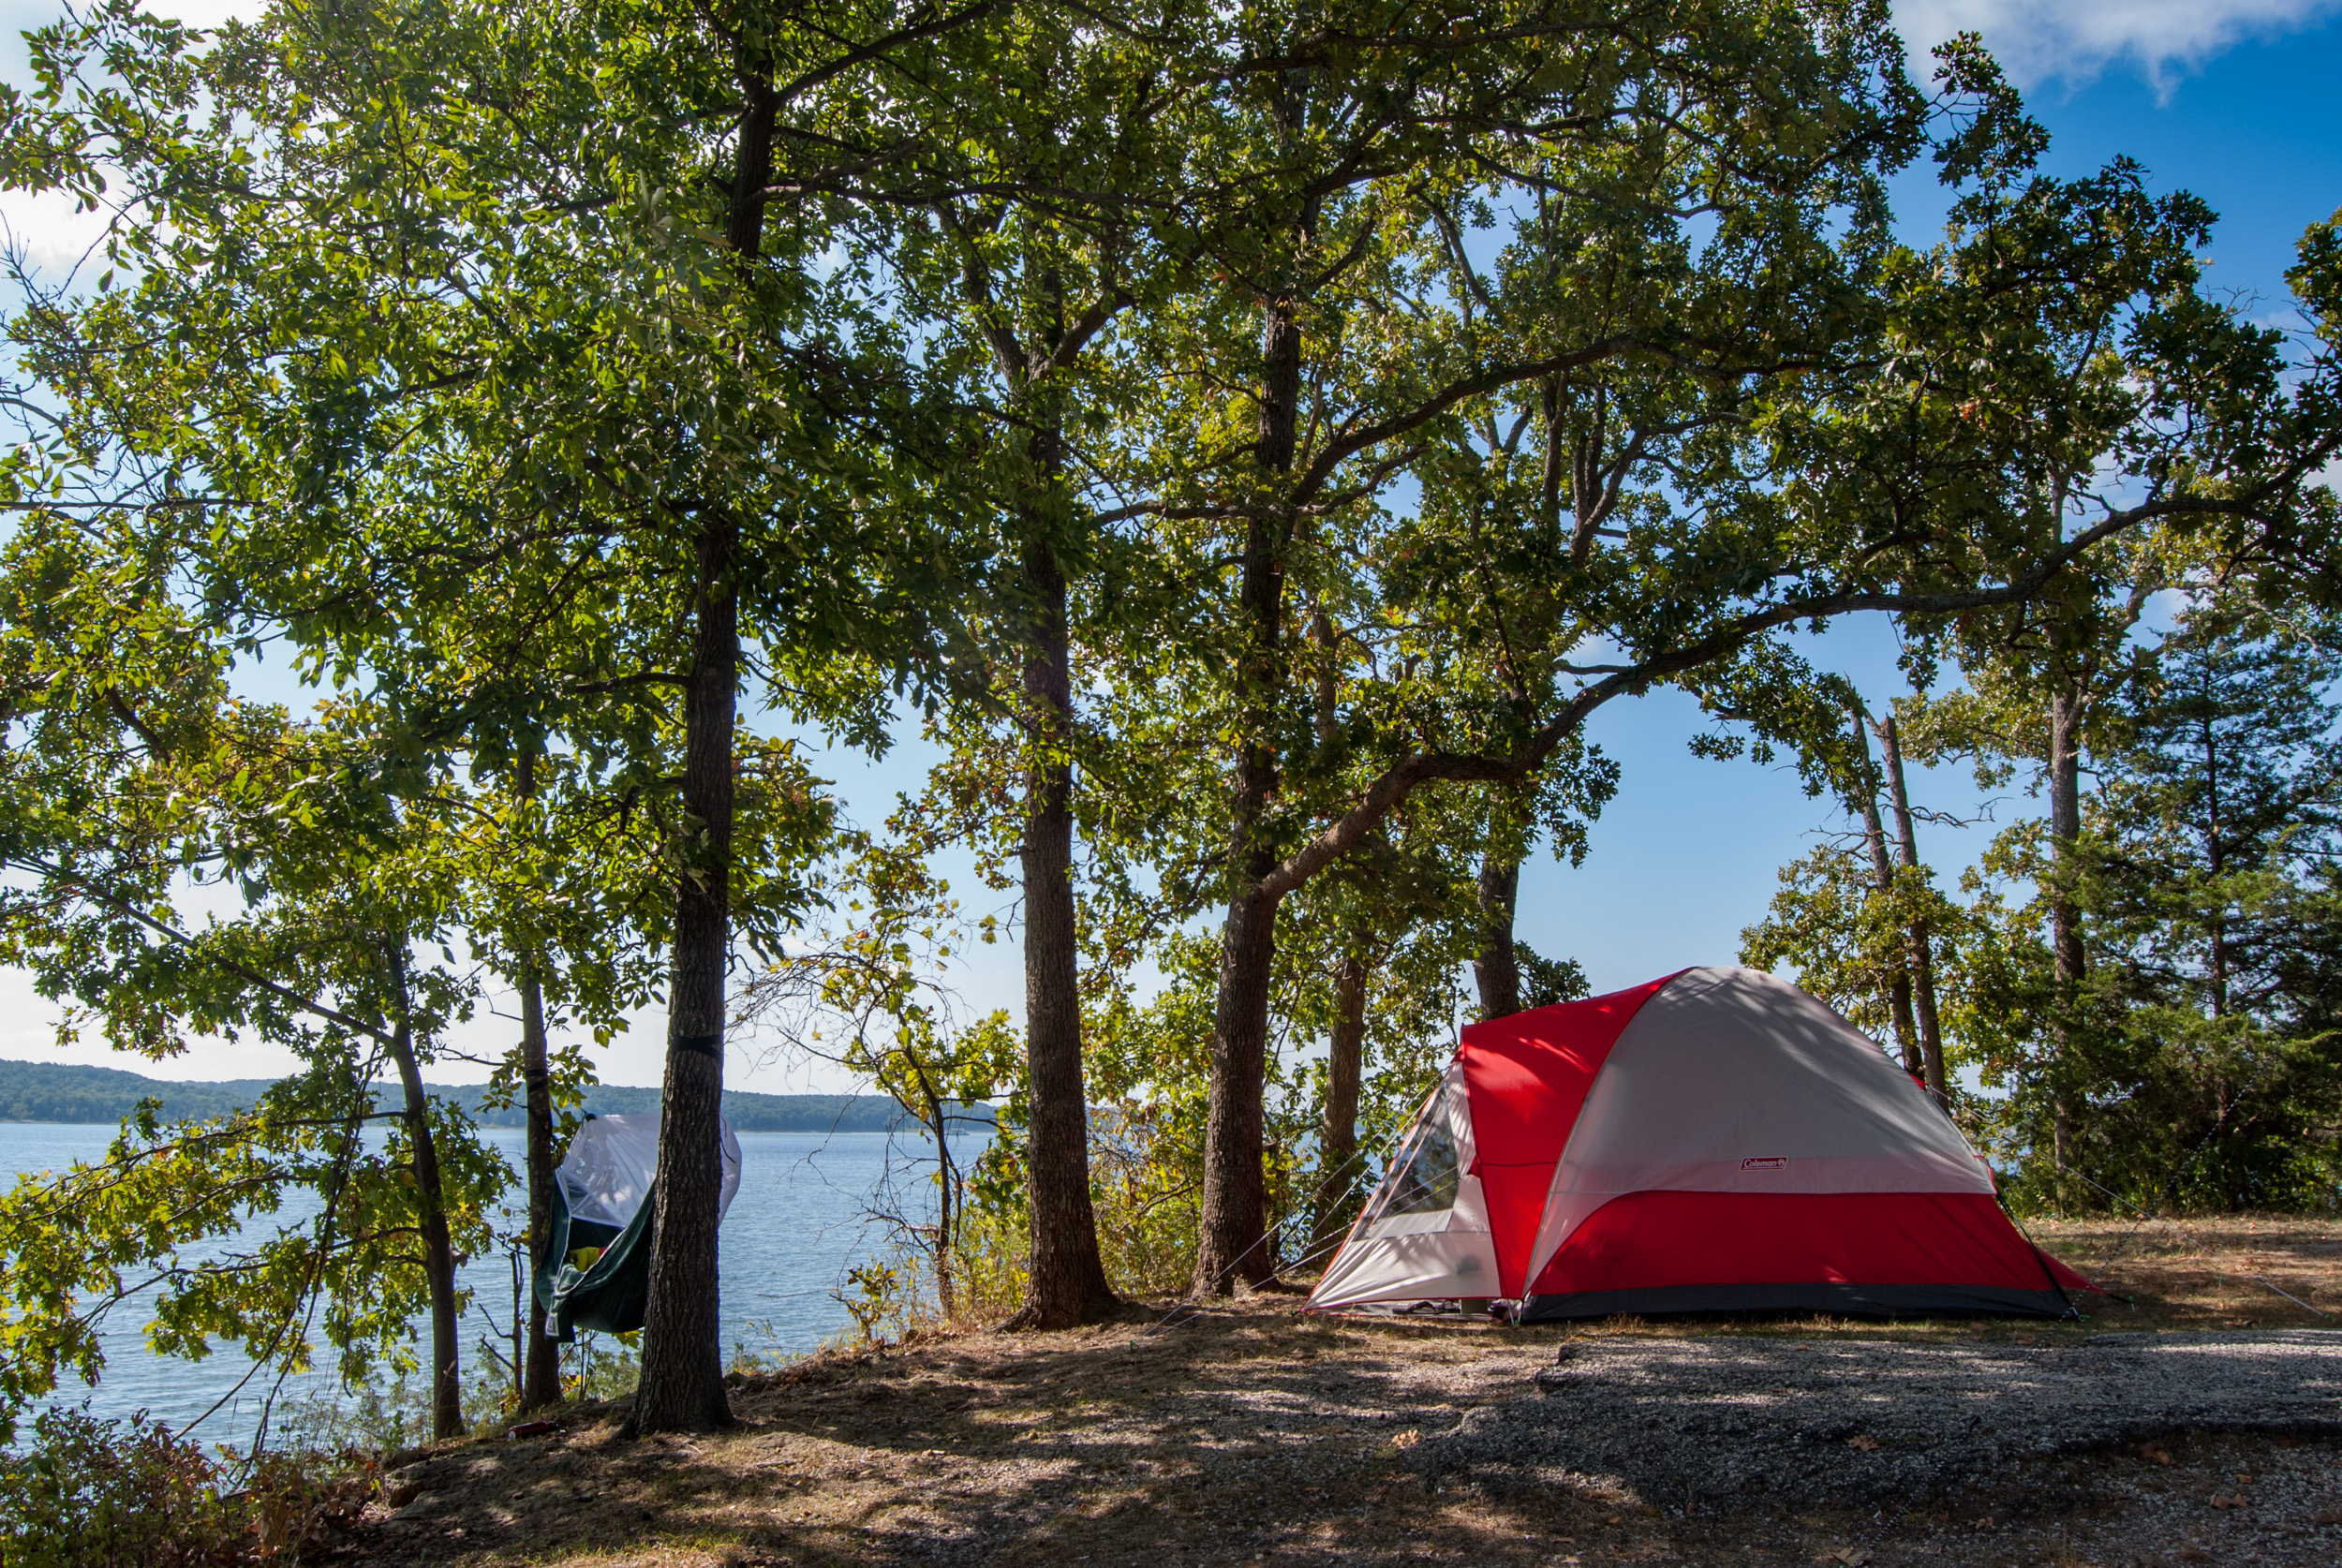 ground advantages camping systems part dream ul versus hammock disadvantages person tent unlike i hammocks